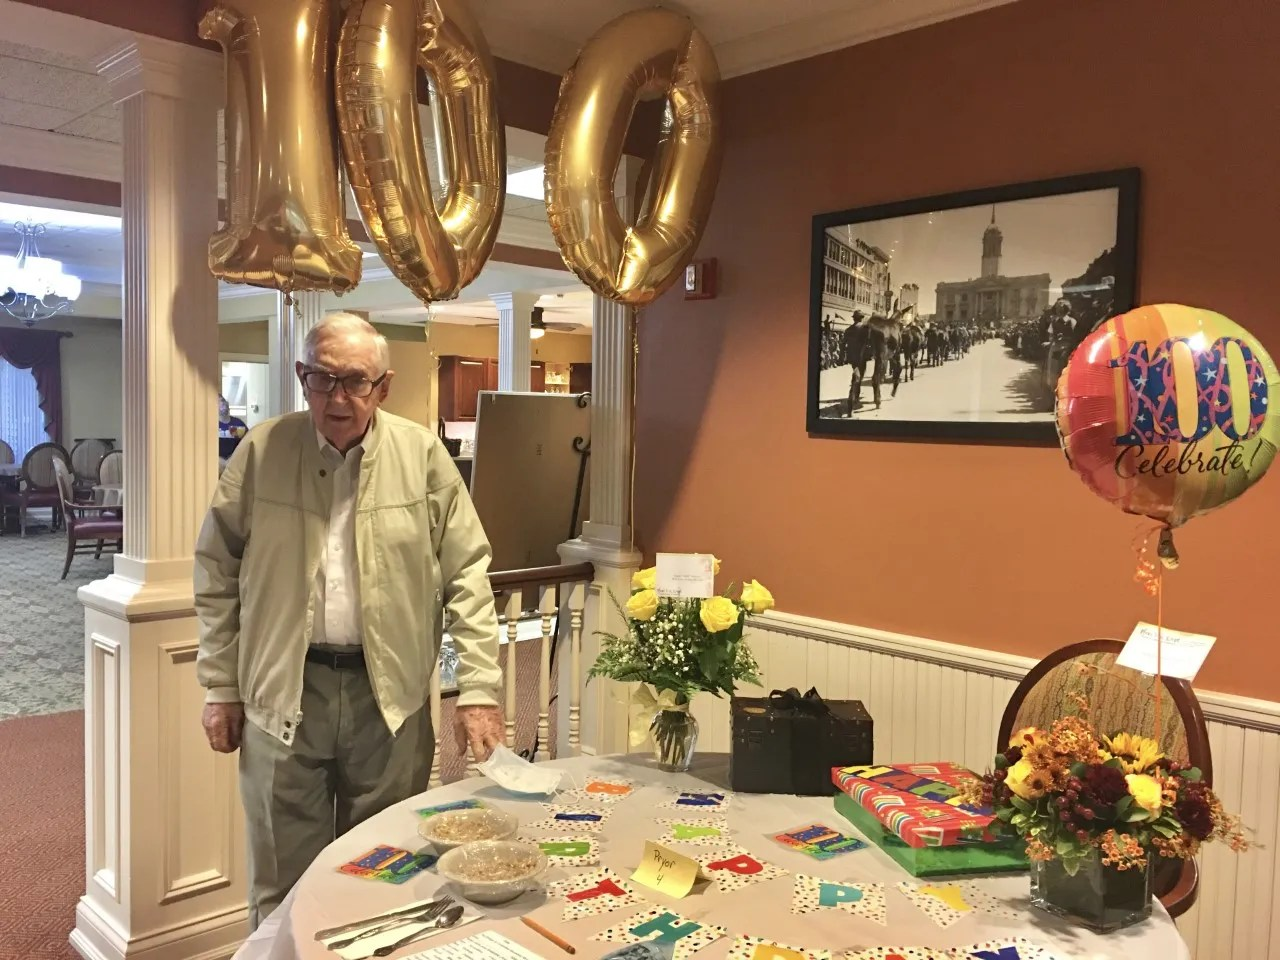 Dr. Harold S. Pryor, the first president of Columbia State Community College celebrates his 100th birthday at The Bridge of Columbia on Oct. 3, 2020.